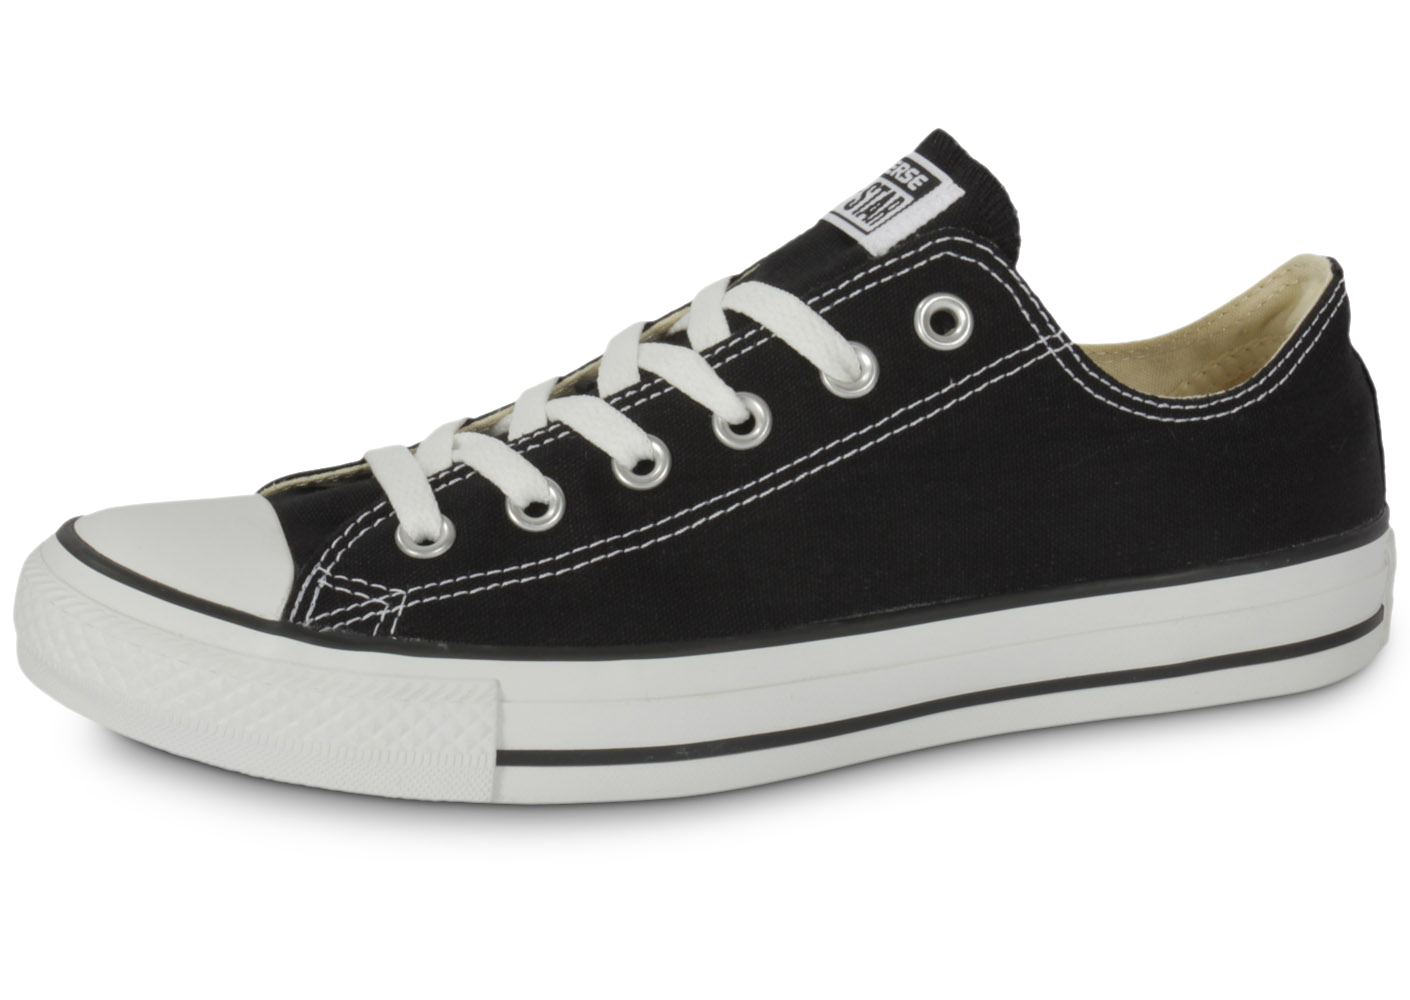 Converse homme chuck taylor all star low noire...